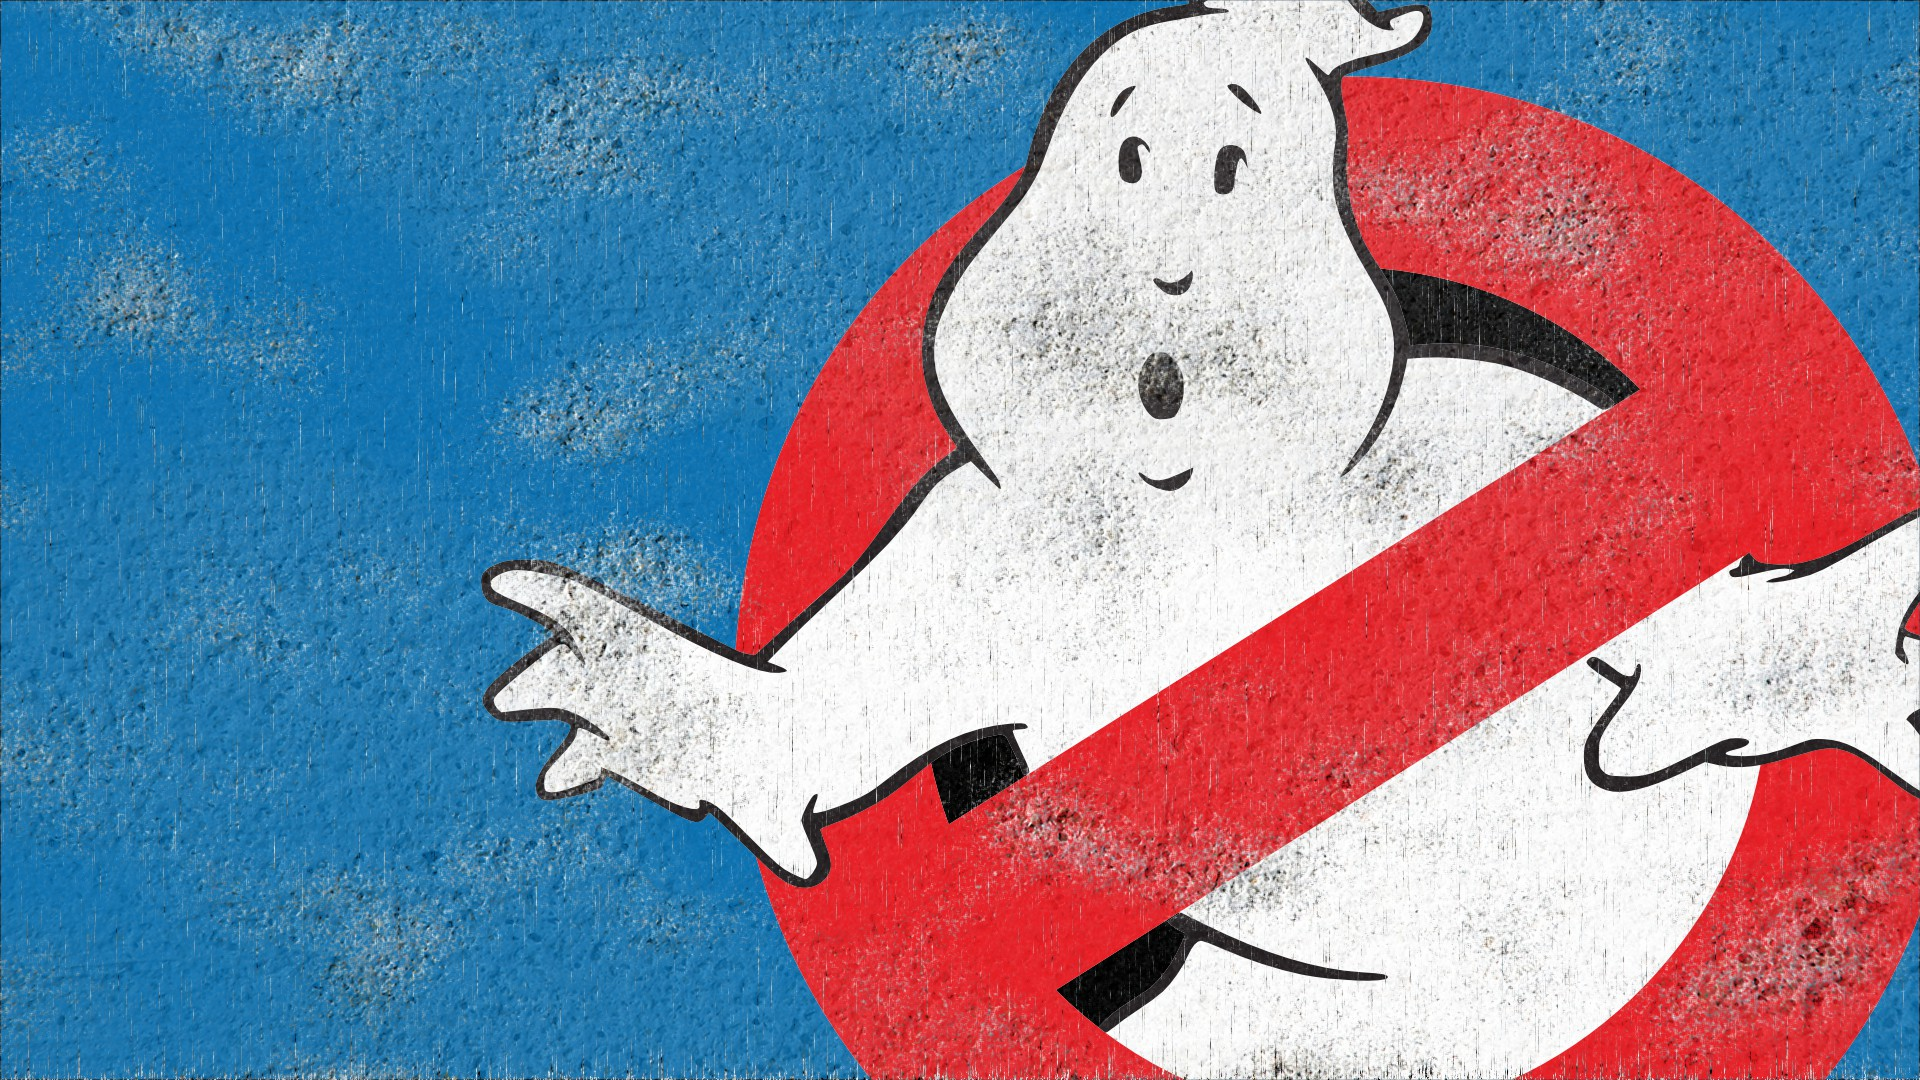 ghostbusters-k-movie-wallpaper-pic-mch068400 - dzbc